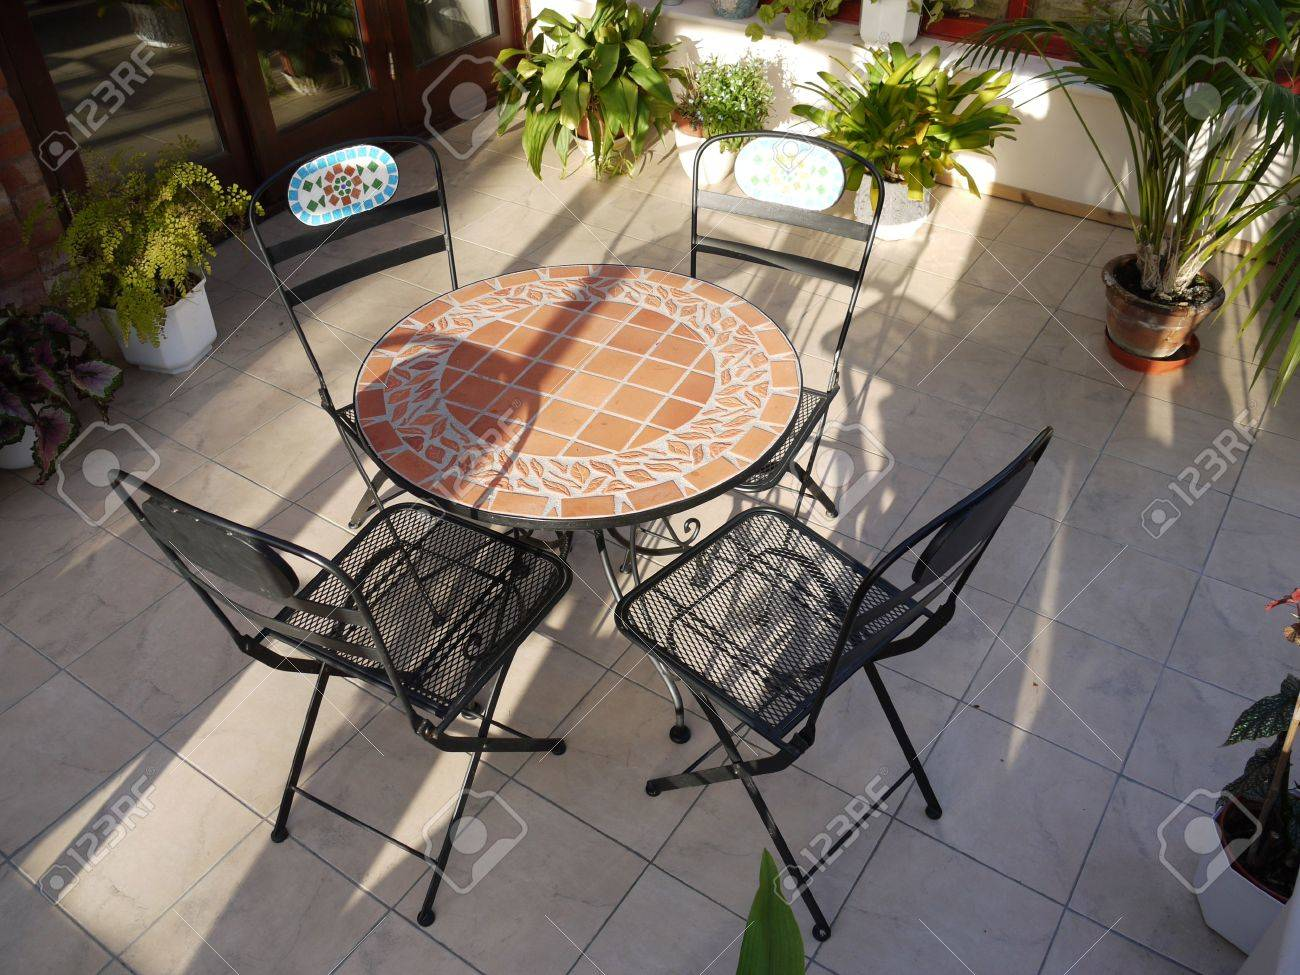 A conservatory with tables,chairs & plants in room in house next to garden. Stock Photo - 4781701